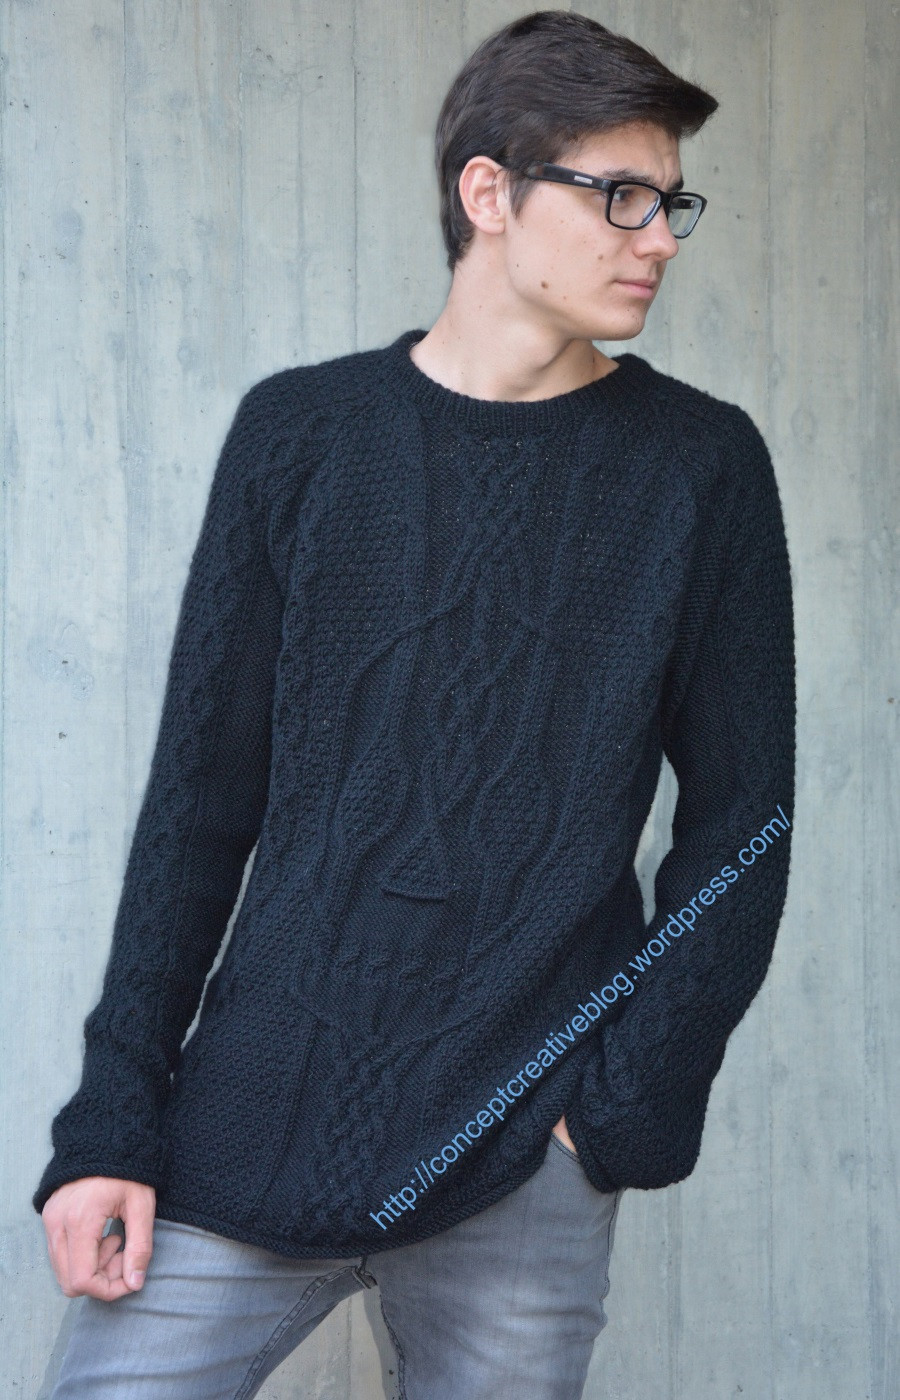 Elegant Knit Cable Pullover with Skull Pattern Free Diagram Cable Knit Sweater Pattern Of Luxury Easy Sweater Knitting Patterns Cable Knit Sweater Pattern